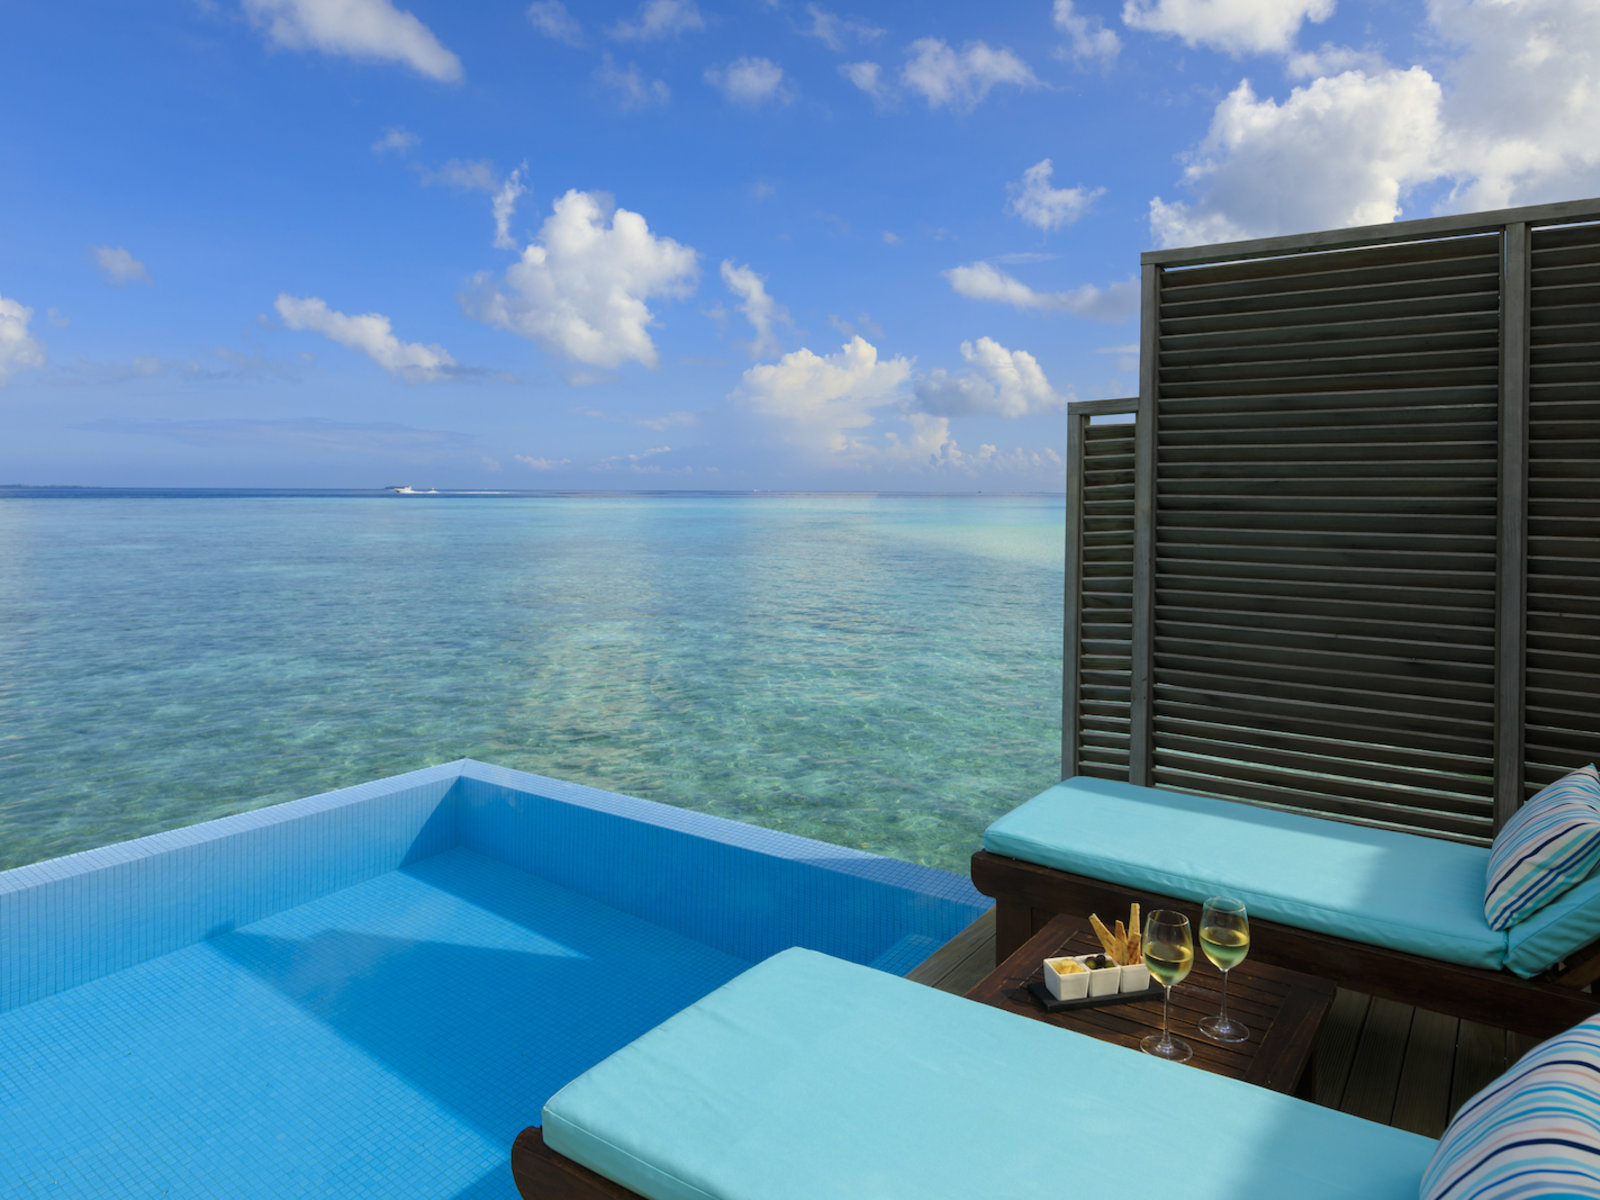 Wohnbeispiel Water Bungalow with Pool